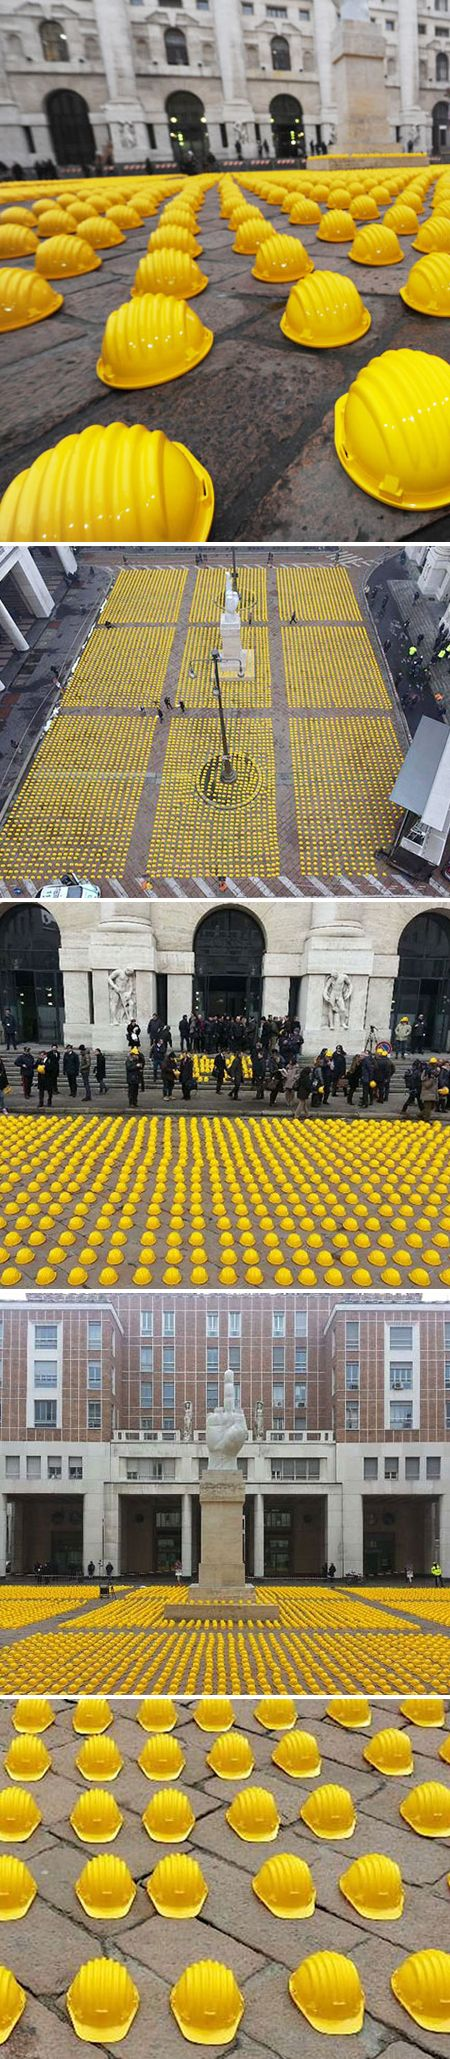 Italian workers used an art installation to protest the immense number of job losses in the construction sector. 10,000 yellow helmets were placed in front of Milan's stock exchange as workers, laborers, clerks, surveyors, architects and real estate agents made a statement on their 'la giornata della collera' – 'the day of anger'.